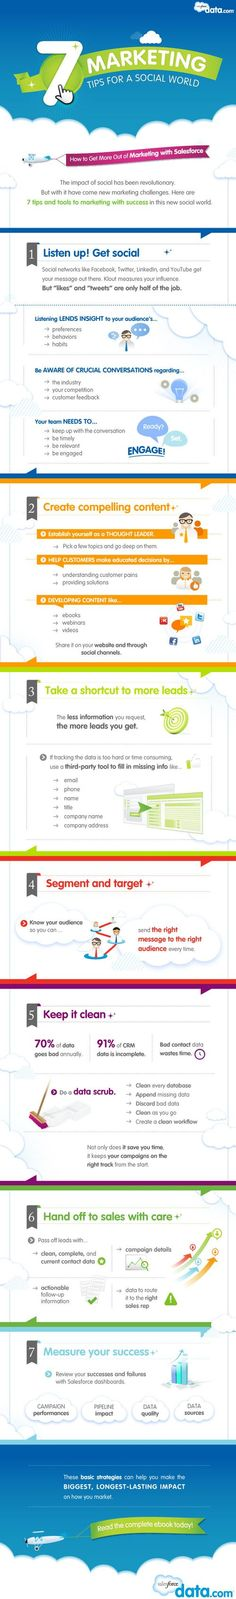 Social-Marketing-Tips |Pinned from PinTo for iPad|